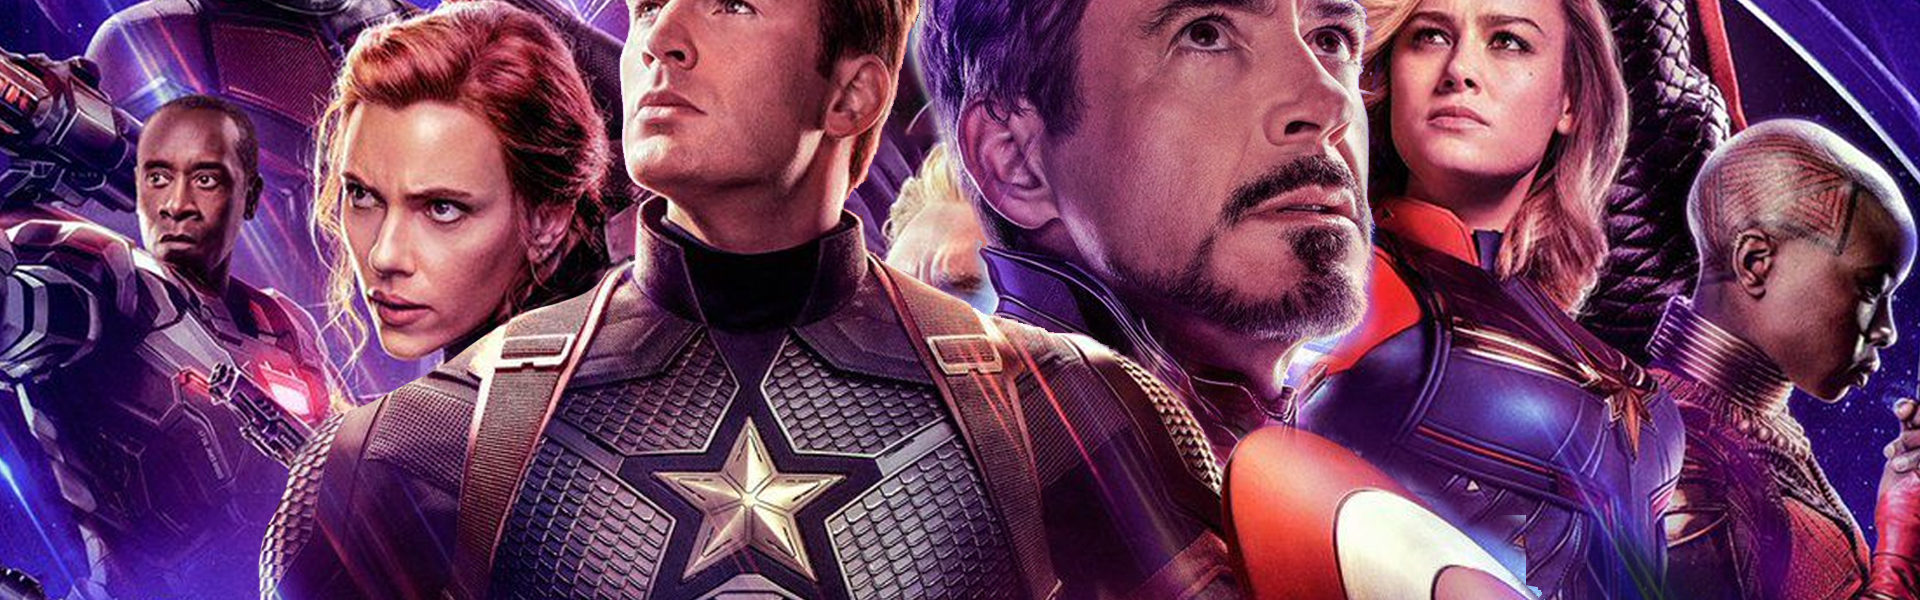 Avengers Endgame India Review